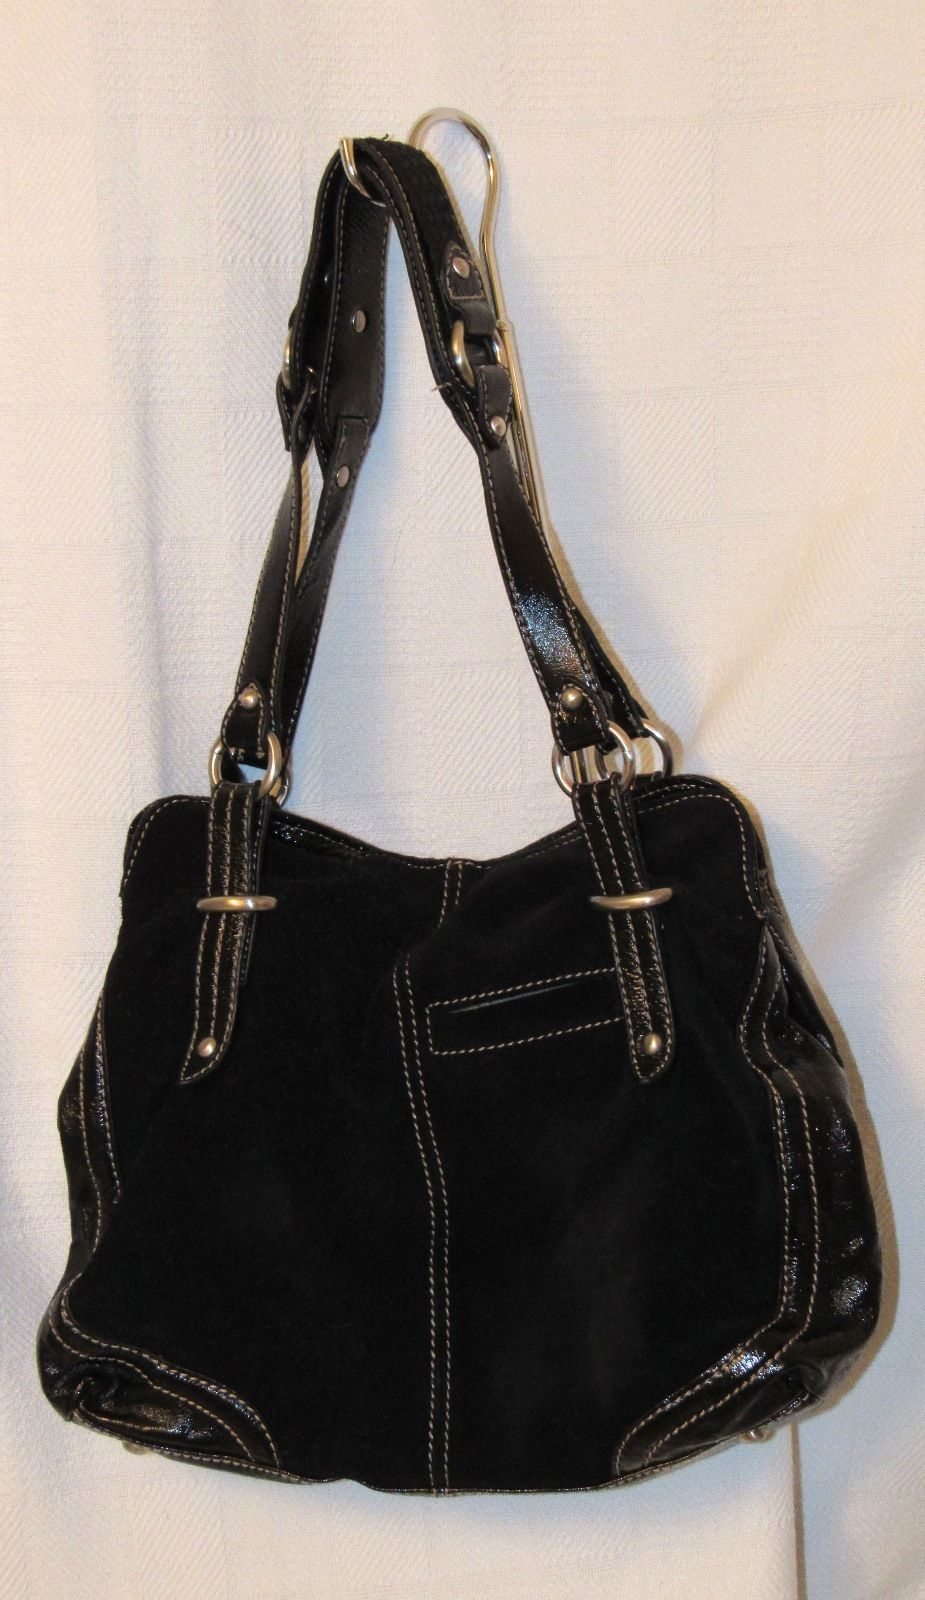 The Sak Black Women's Suede Patent Leather Slouchy Satchel